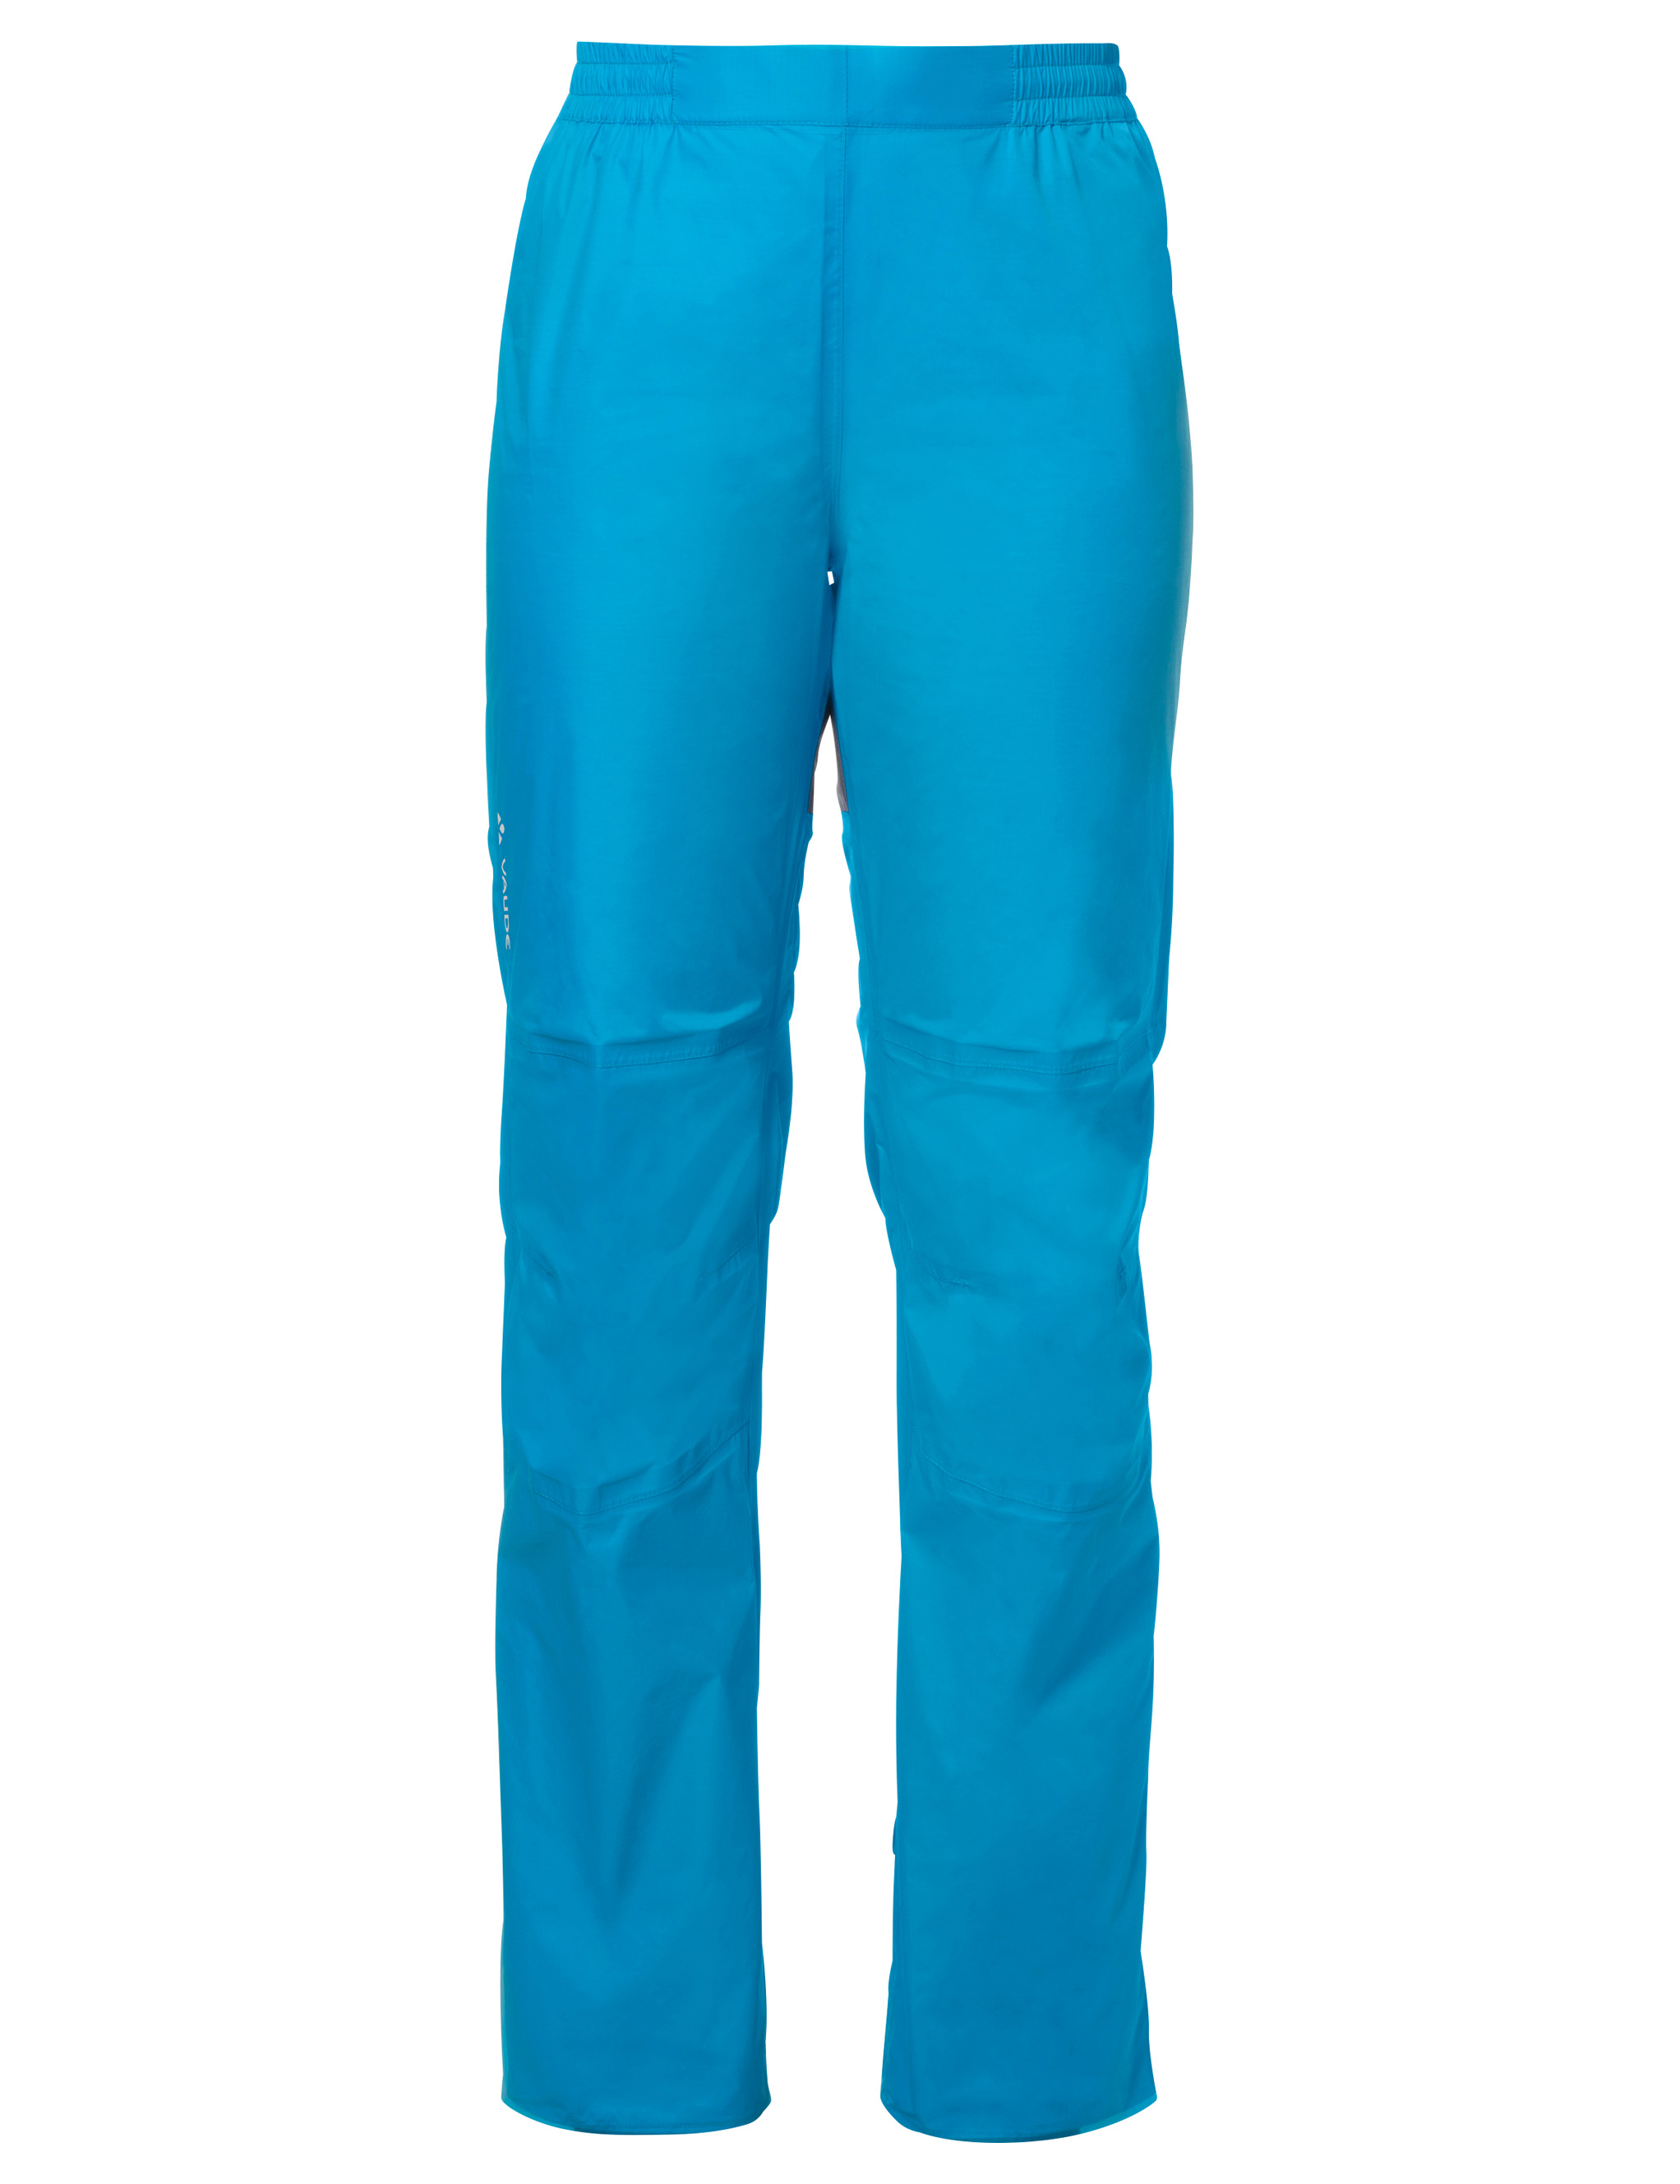 VAUDE Women´s Drop Pants II spring blue Größe 34 - schneider-sports